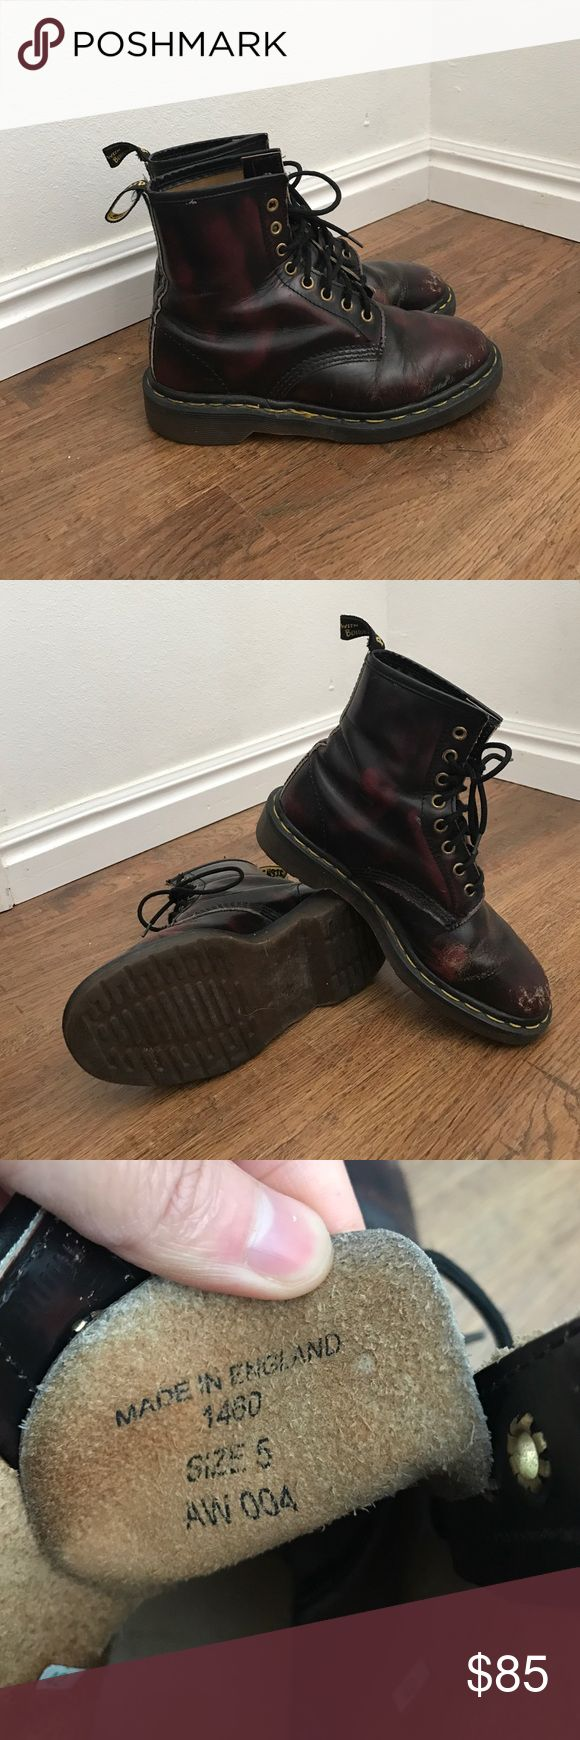 Dr Doc Martens size 5 1460 boots Made in England True Dr Doc Martens 1460 leather Boots, Made in England. Women's Size UK 5, US 7, EU 38. Various scratches for that grungy look. In good condition! One of the tag is torn off, you can sew it back on or leave it as is still looks cool. Lots of life! Dr. Martens Shoes Combat & Moto Boots